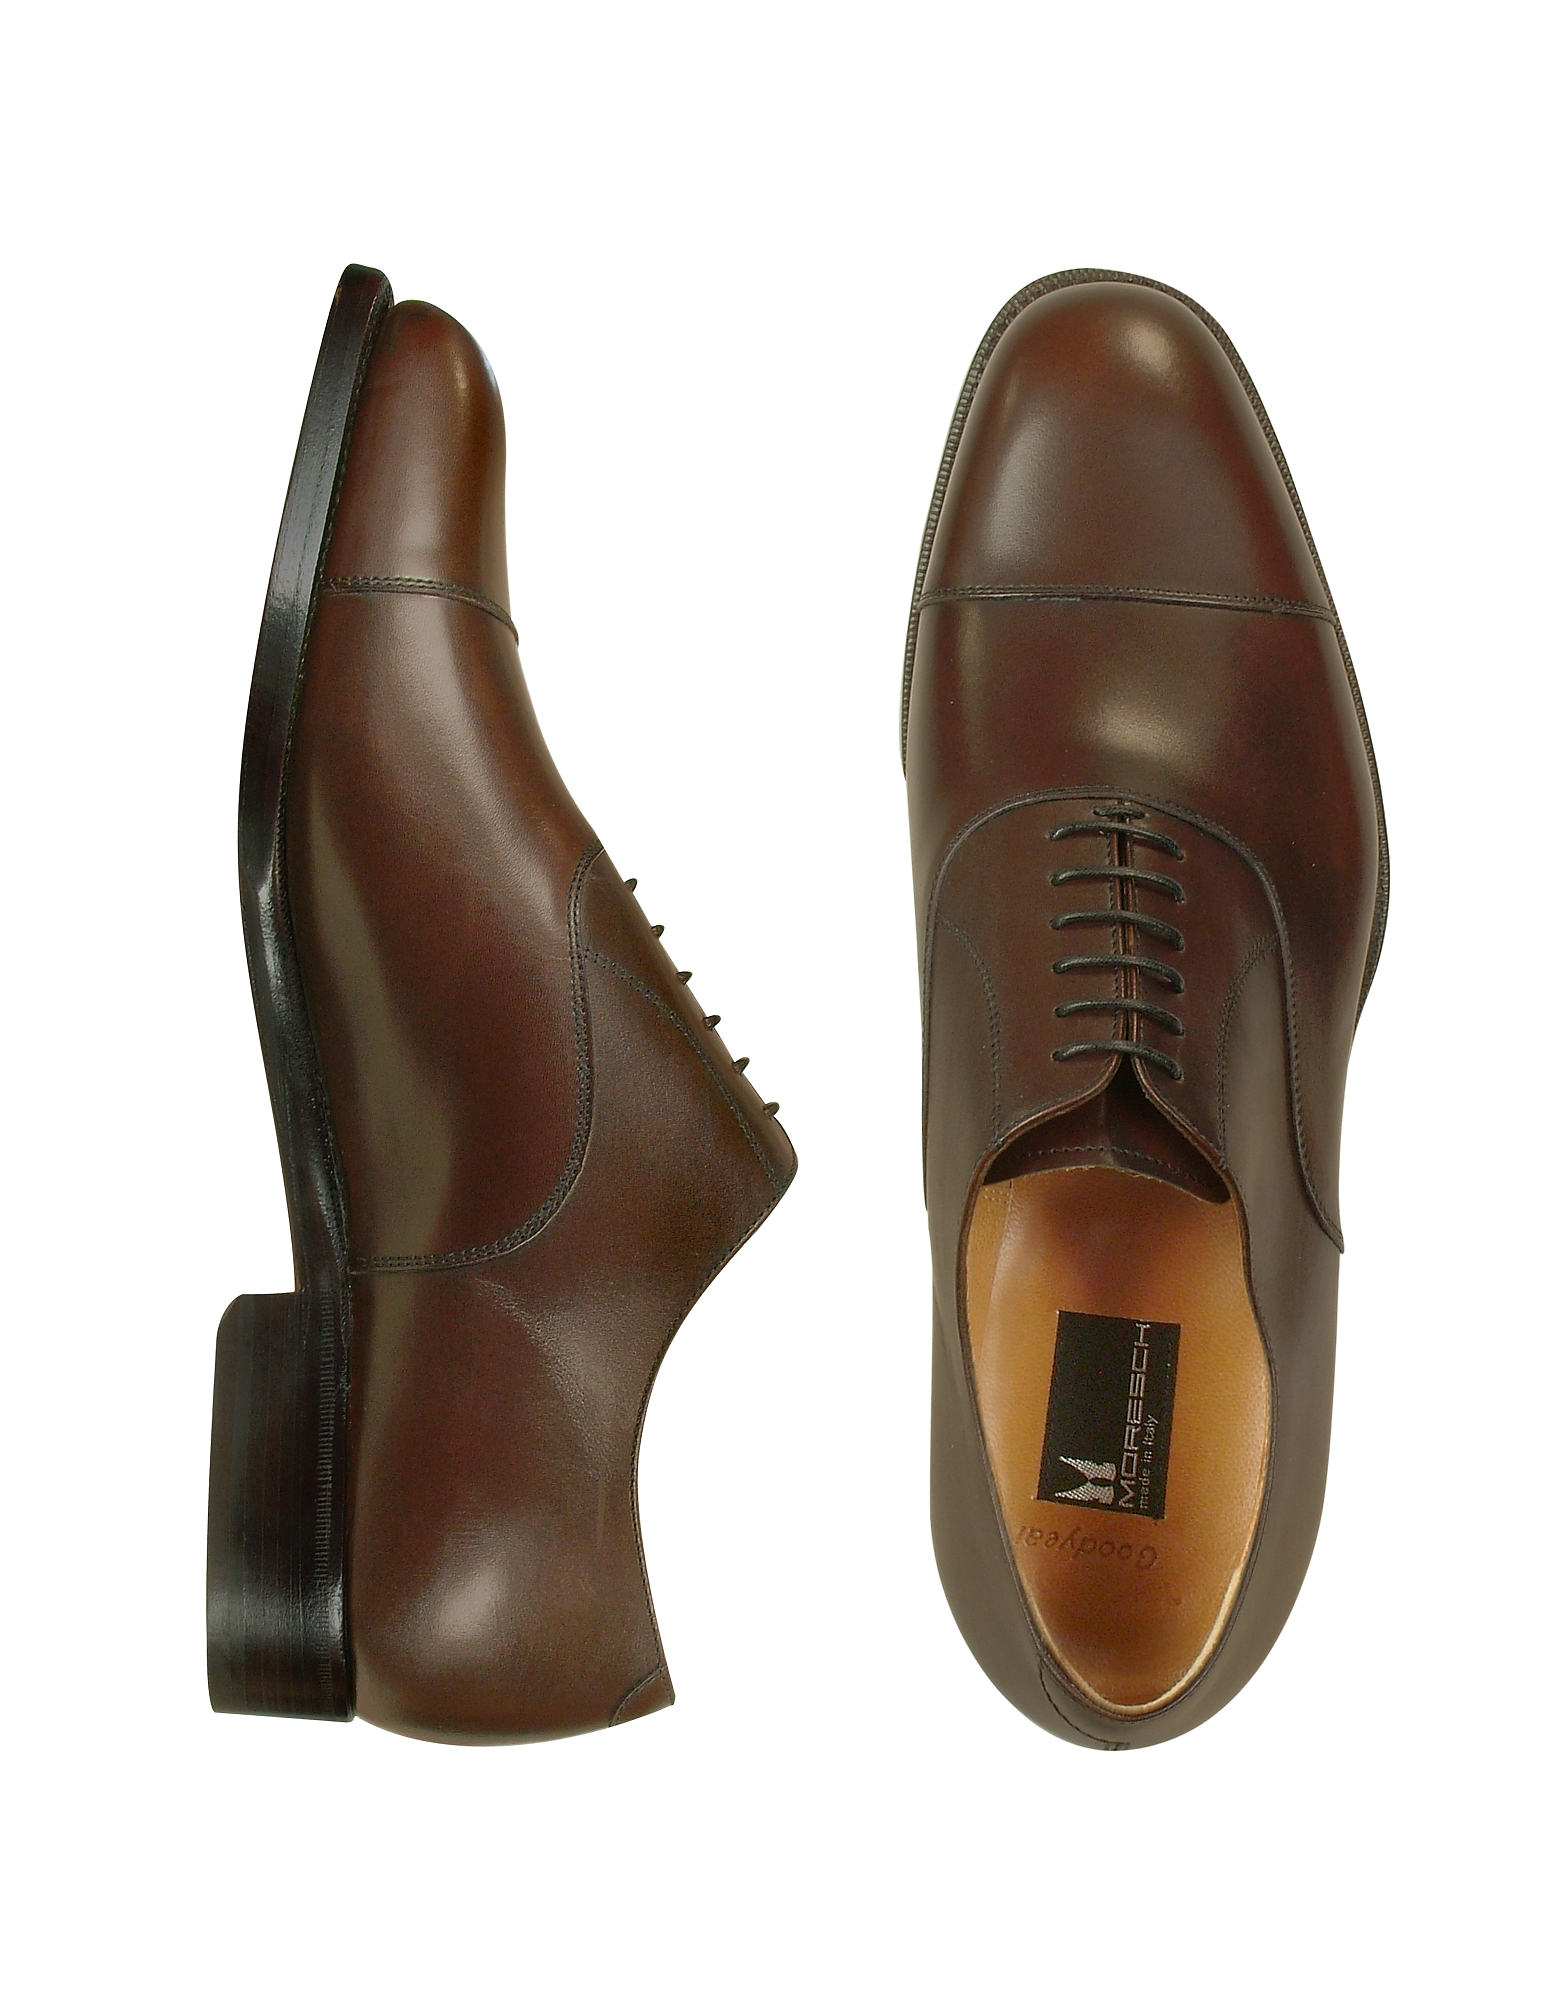 Moreschi Shoes, Londra - Dark Brown Calfskin Cap Toe Oxford Shoes